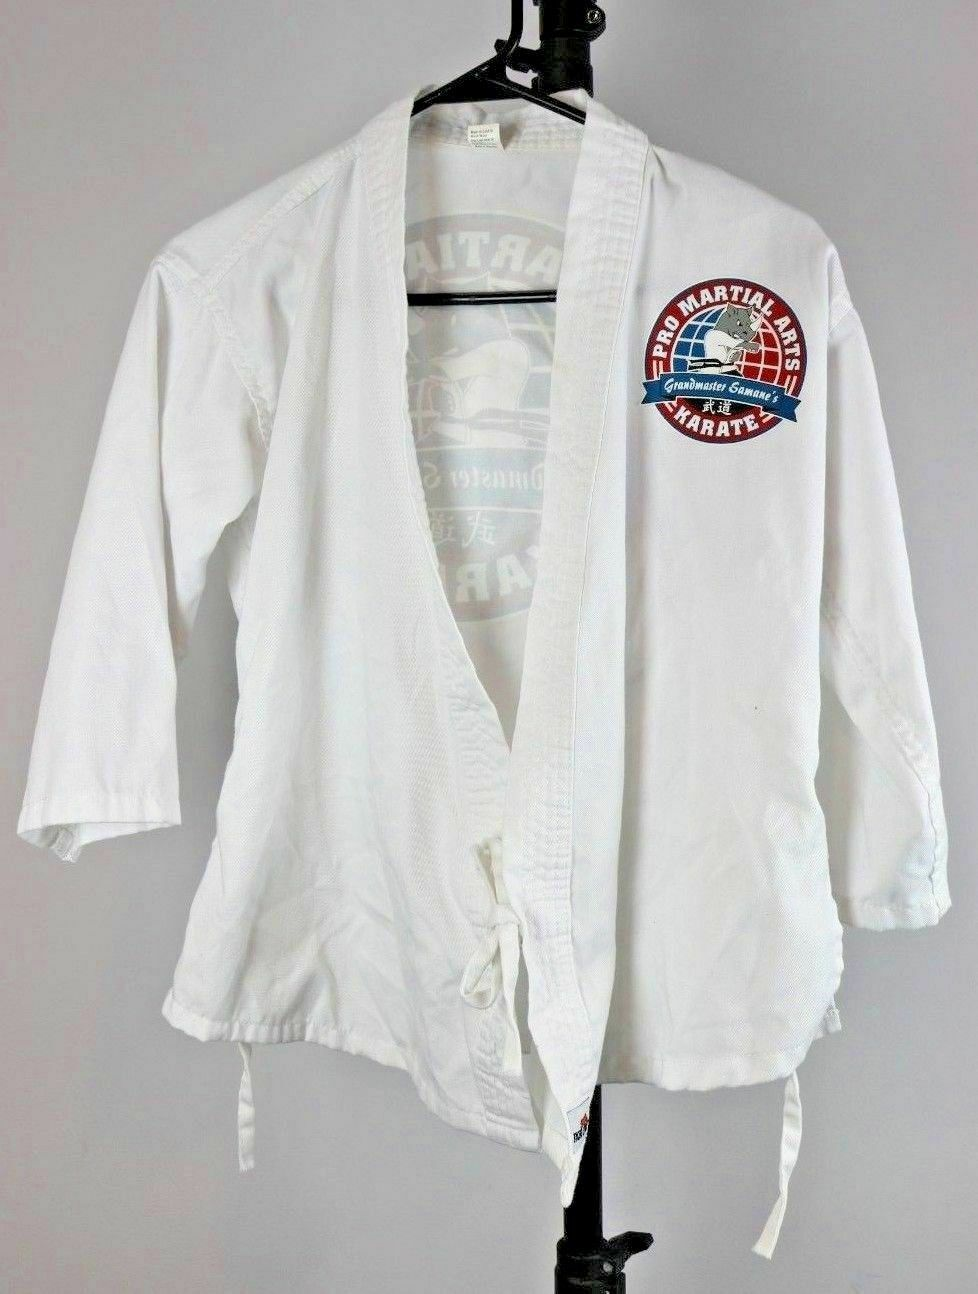 Tiger Claw Martial Arts Karate Coat Jacket Grandmaster Samane's Costume Size 00 - Fazoom